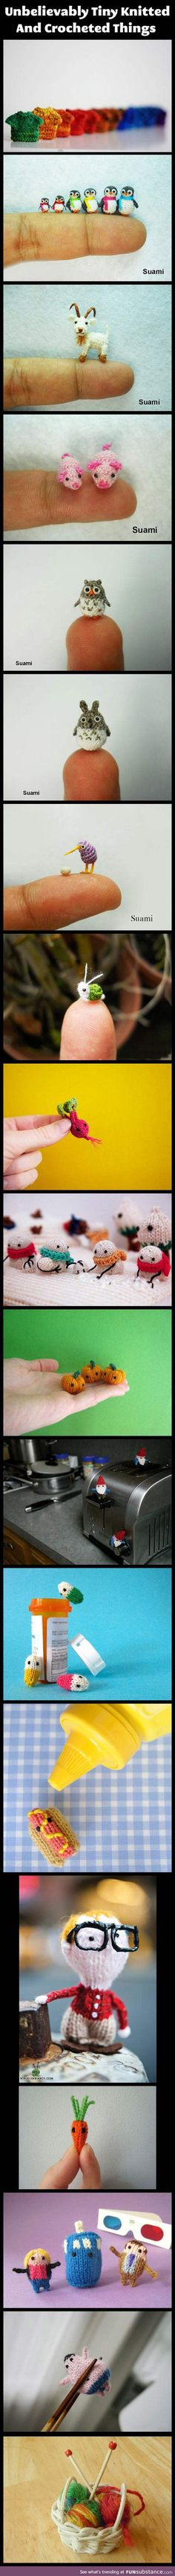 Tiny knitted and crocheted creatures